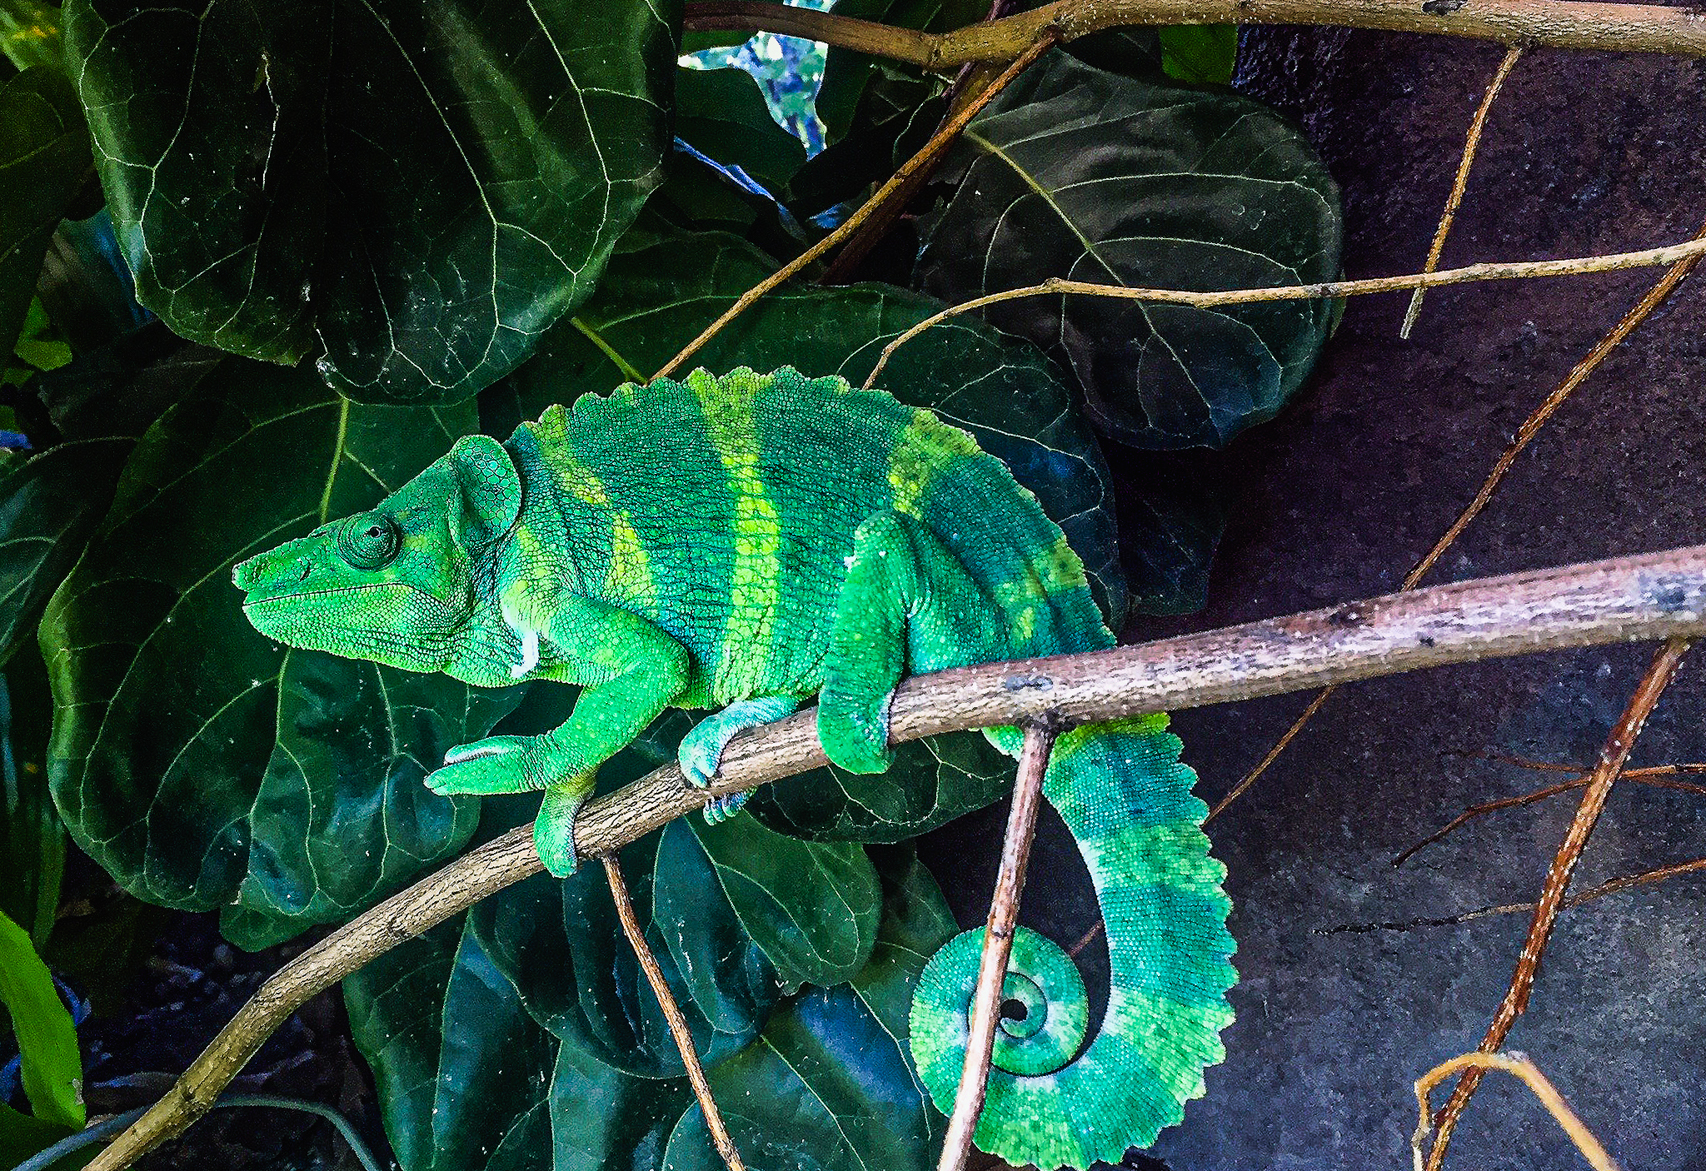 A Meller's Chameleon hanging out at the Virginia Zoo